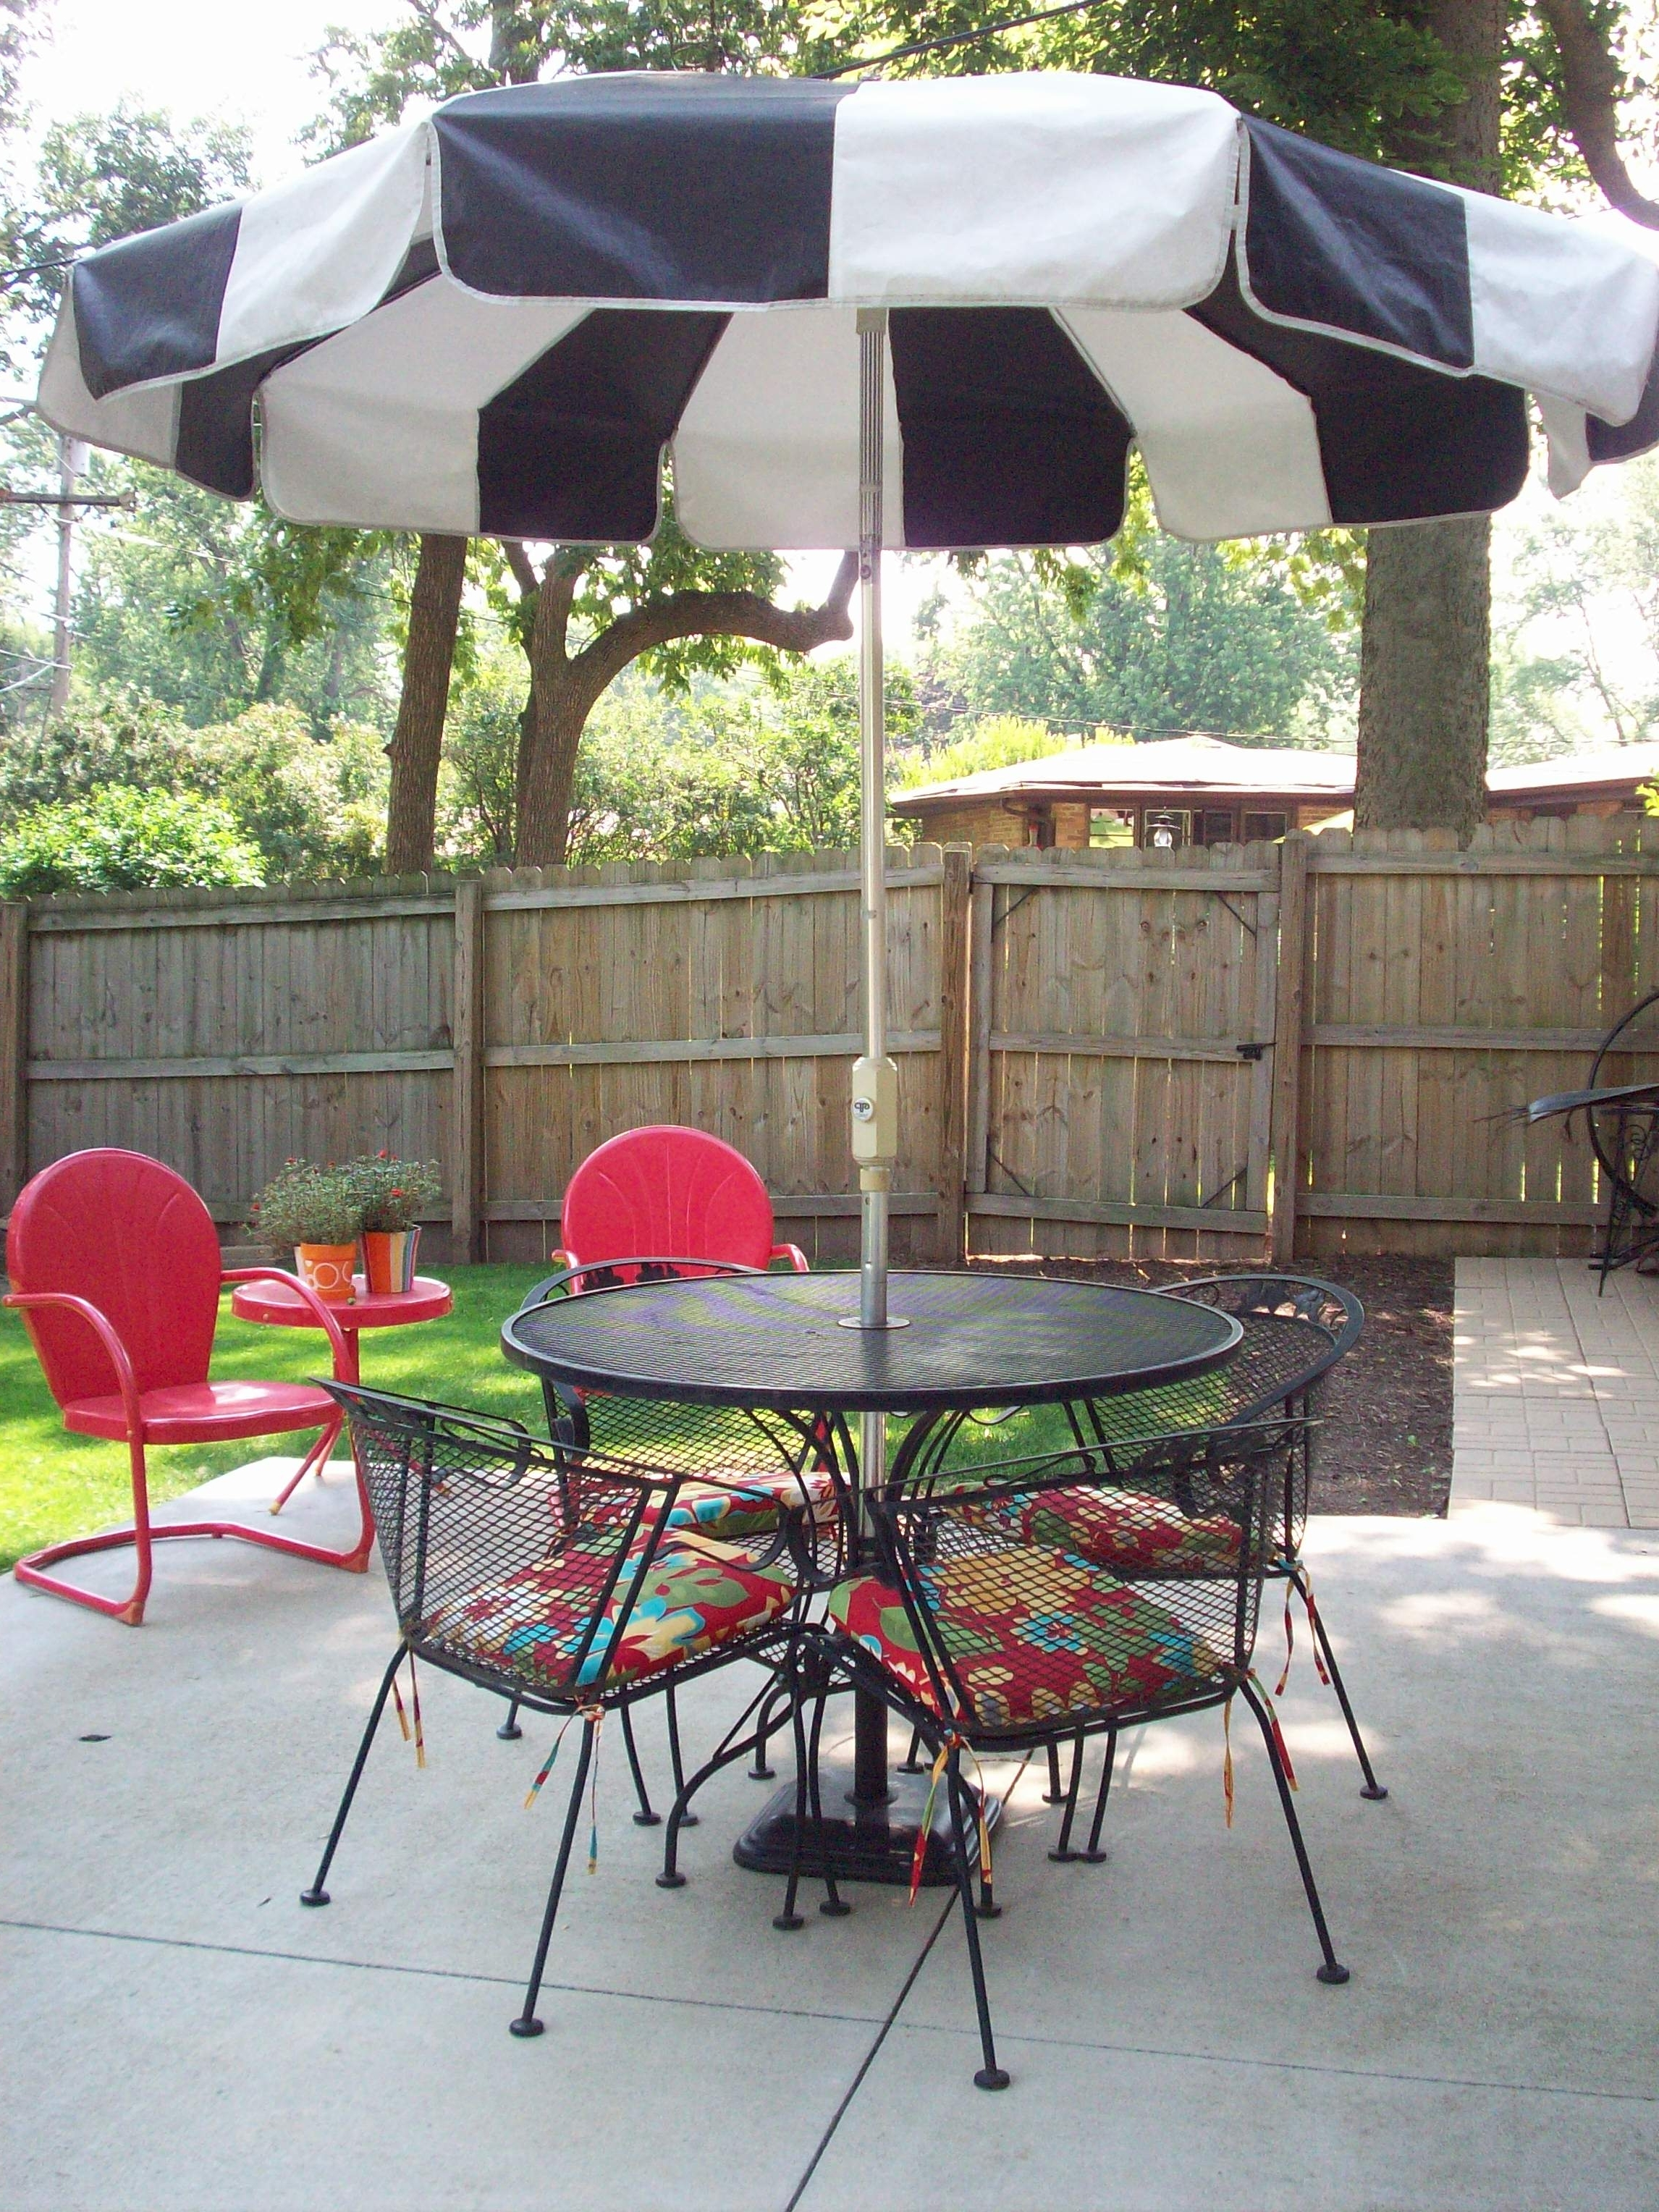 Newest Amazing Umbrella For Patio Table Garden Enchanting Outdoor Patio Within Patio Table And Chairs With Umbrellas (View 11 of 20)